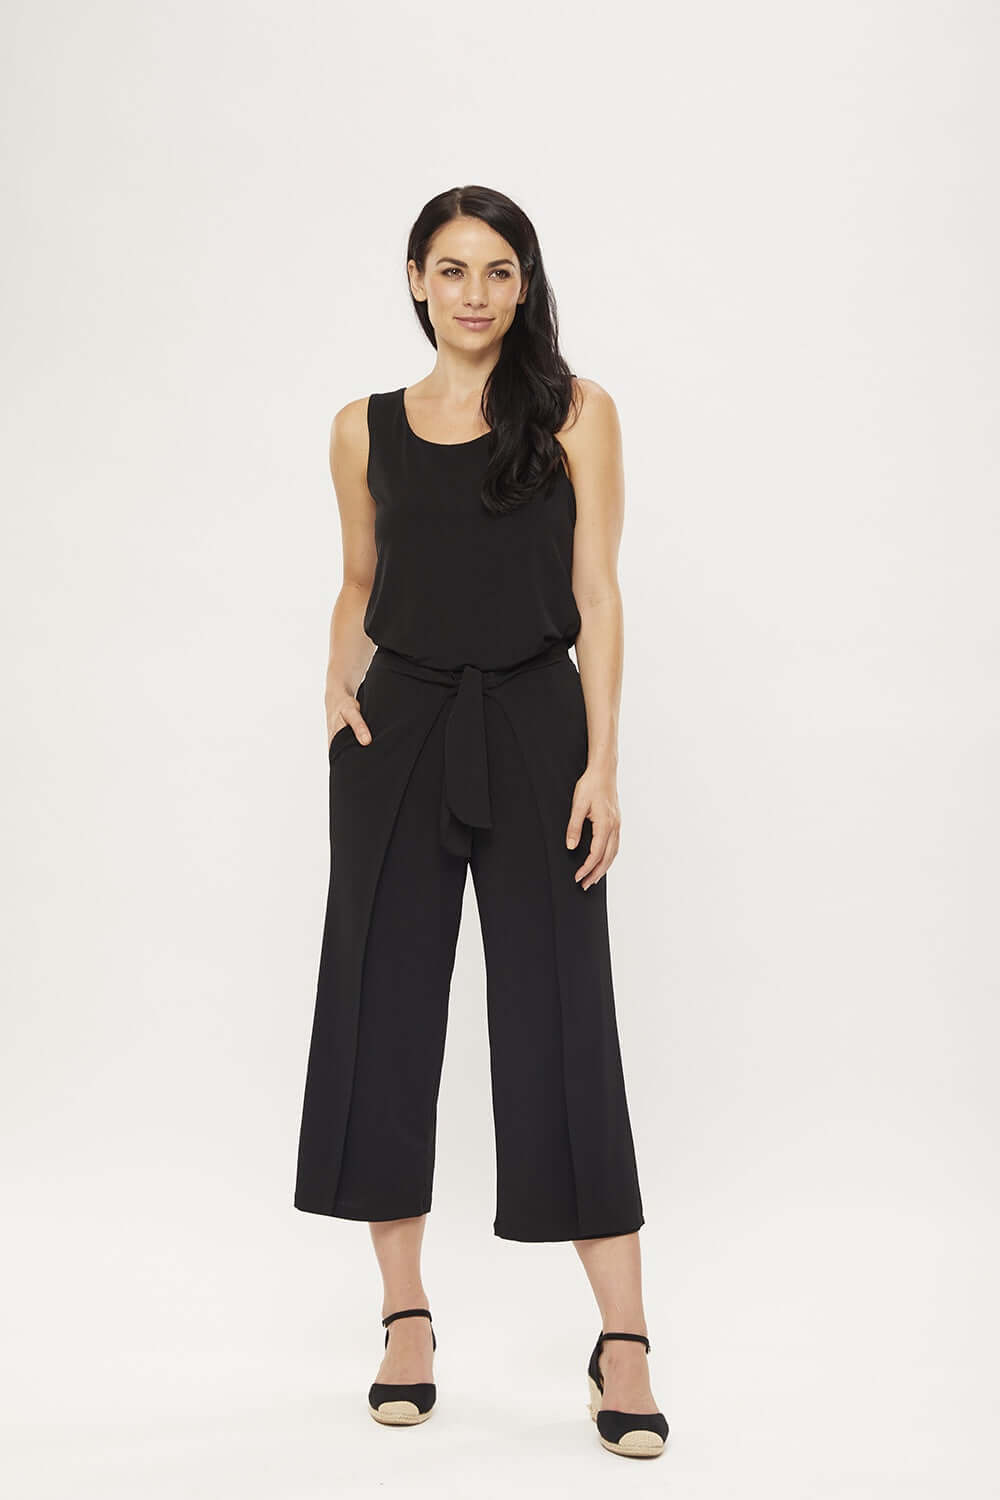 Philosophy THAI Black Wrap Culotte